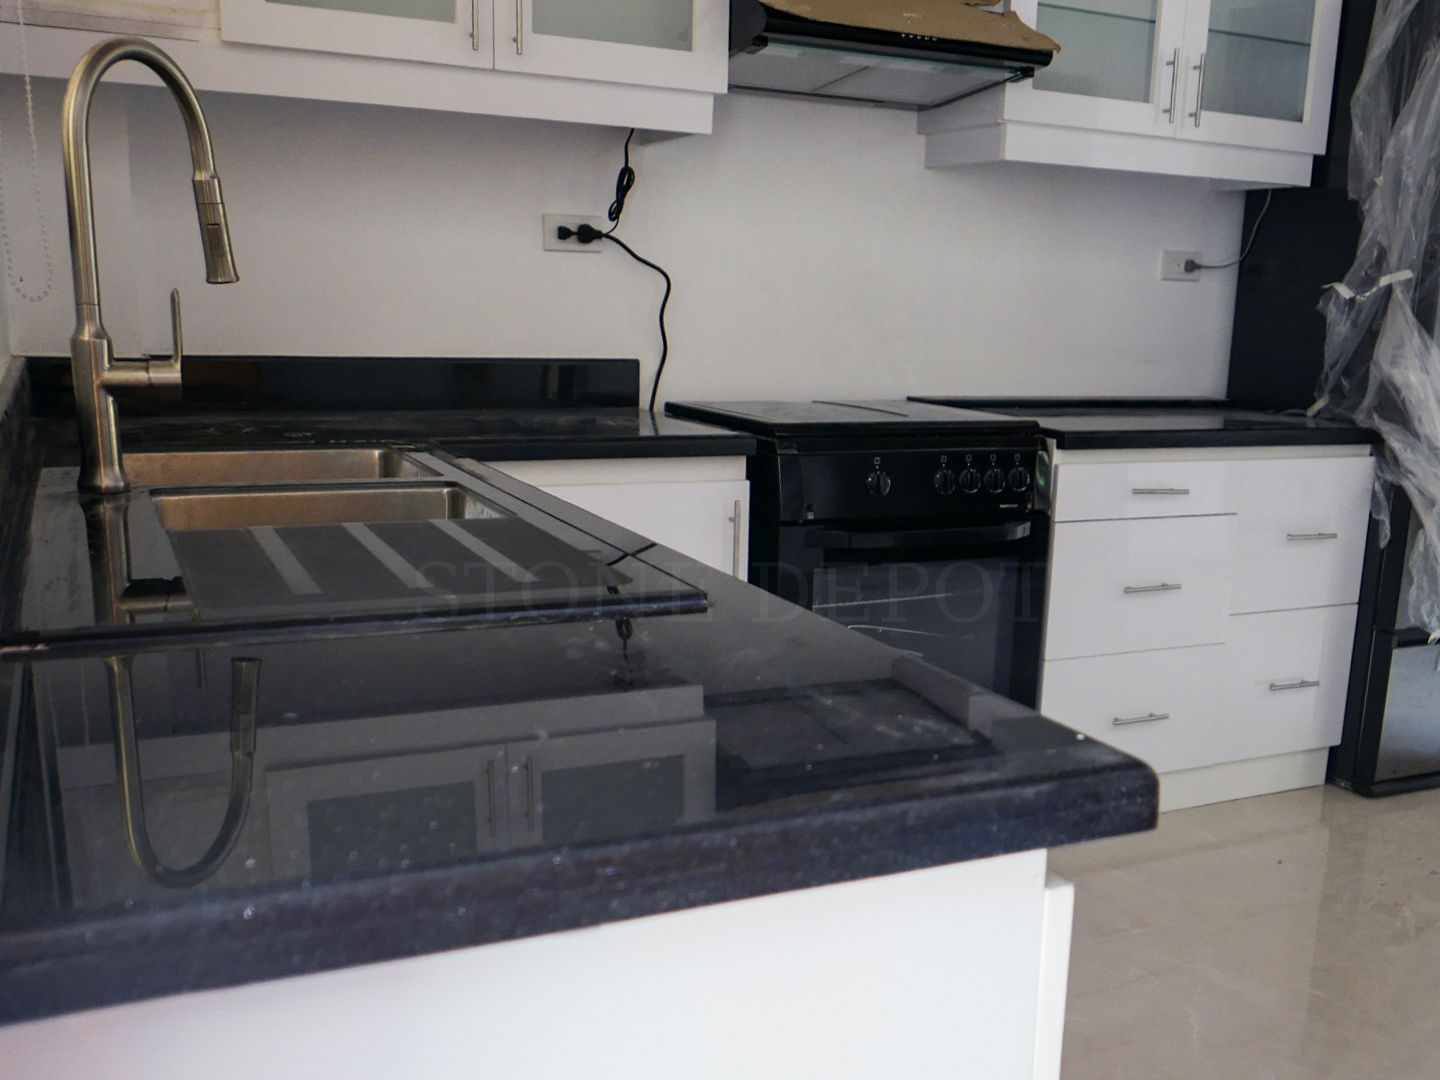 Are You Worried About Incurring Water Damage On Your New Modular Kitchen Cabinet Get A Quarter Round Edge P Marble Granite Countertops Countertops Kitchen